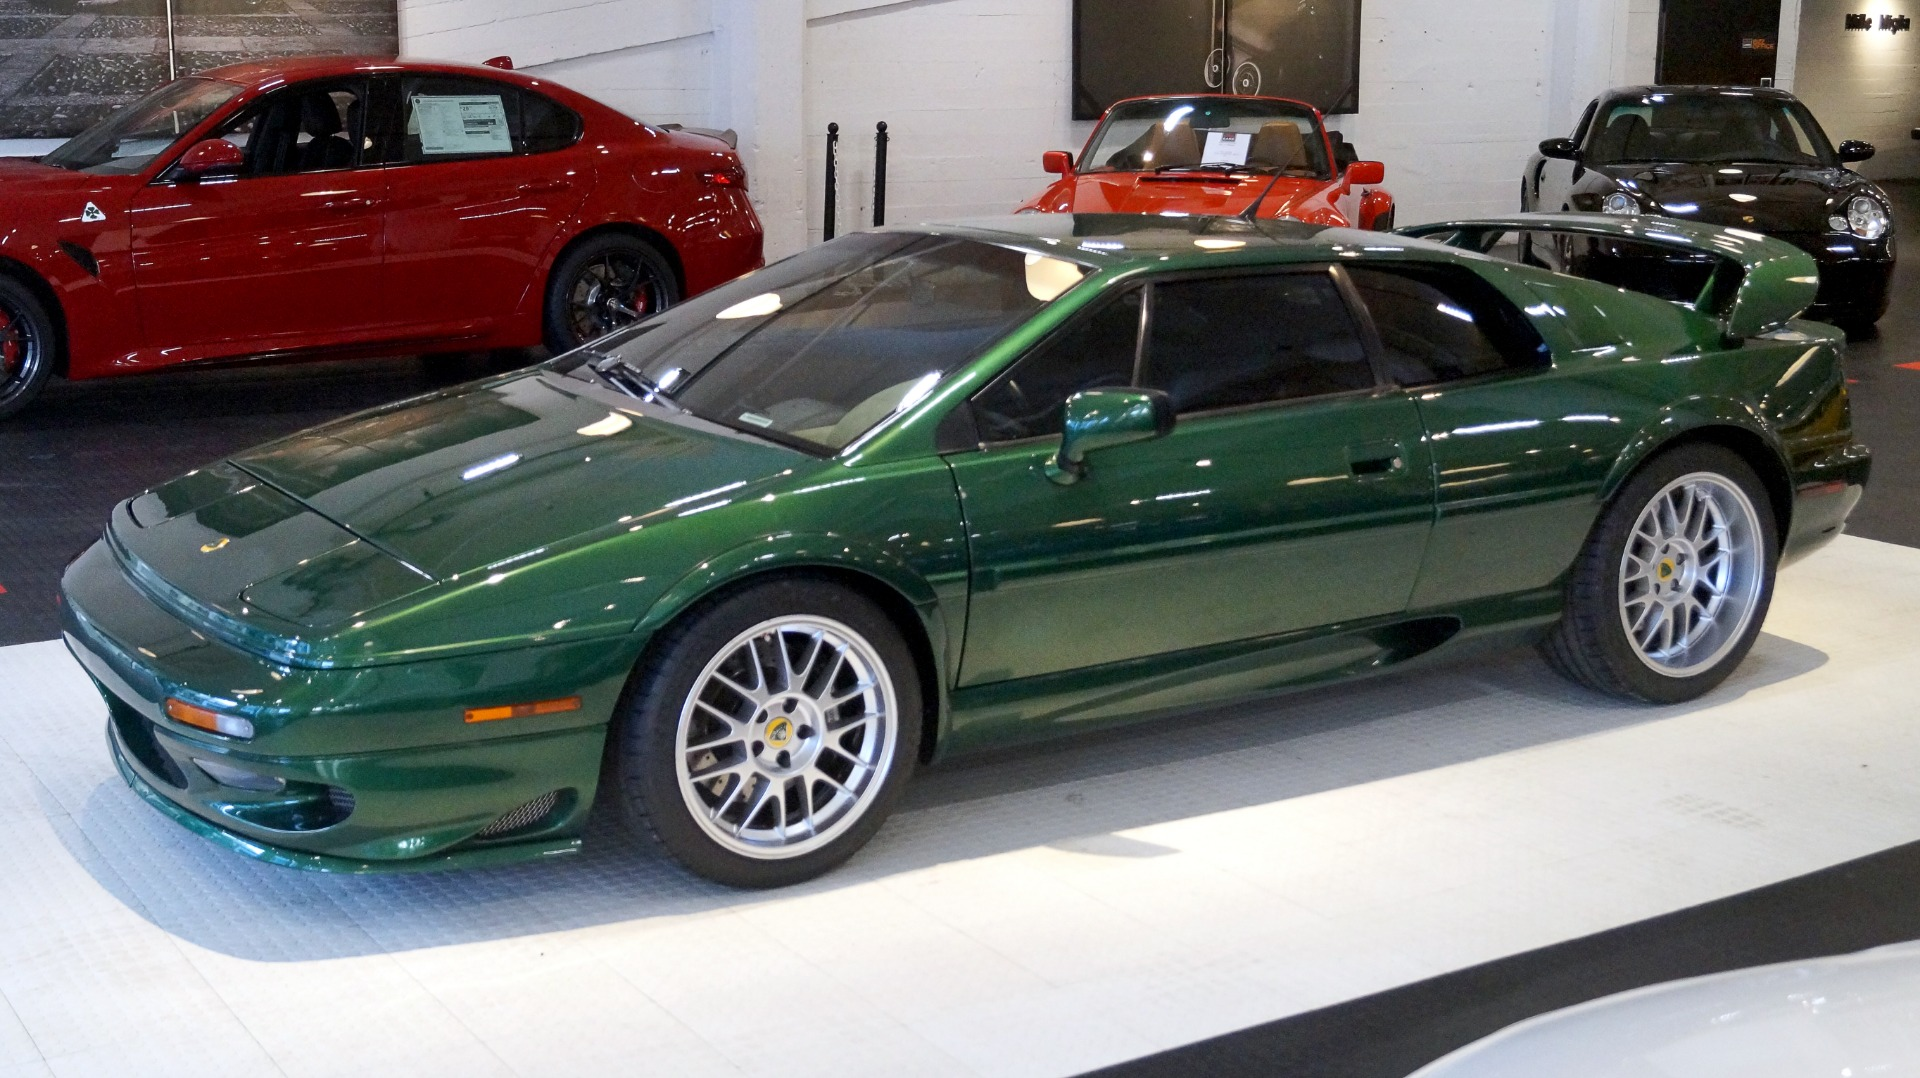 2004 lotus esprit v8 stock 171101c for sale near san francisco ca ca lotus dealer. Black Bedroom Furniture Sets. Home Design Ideas